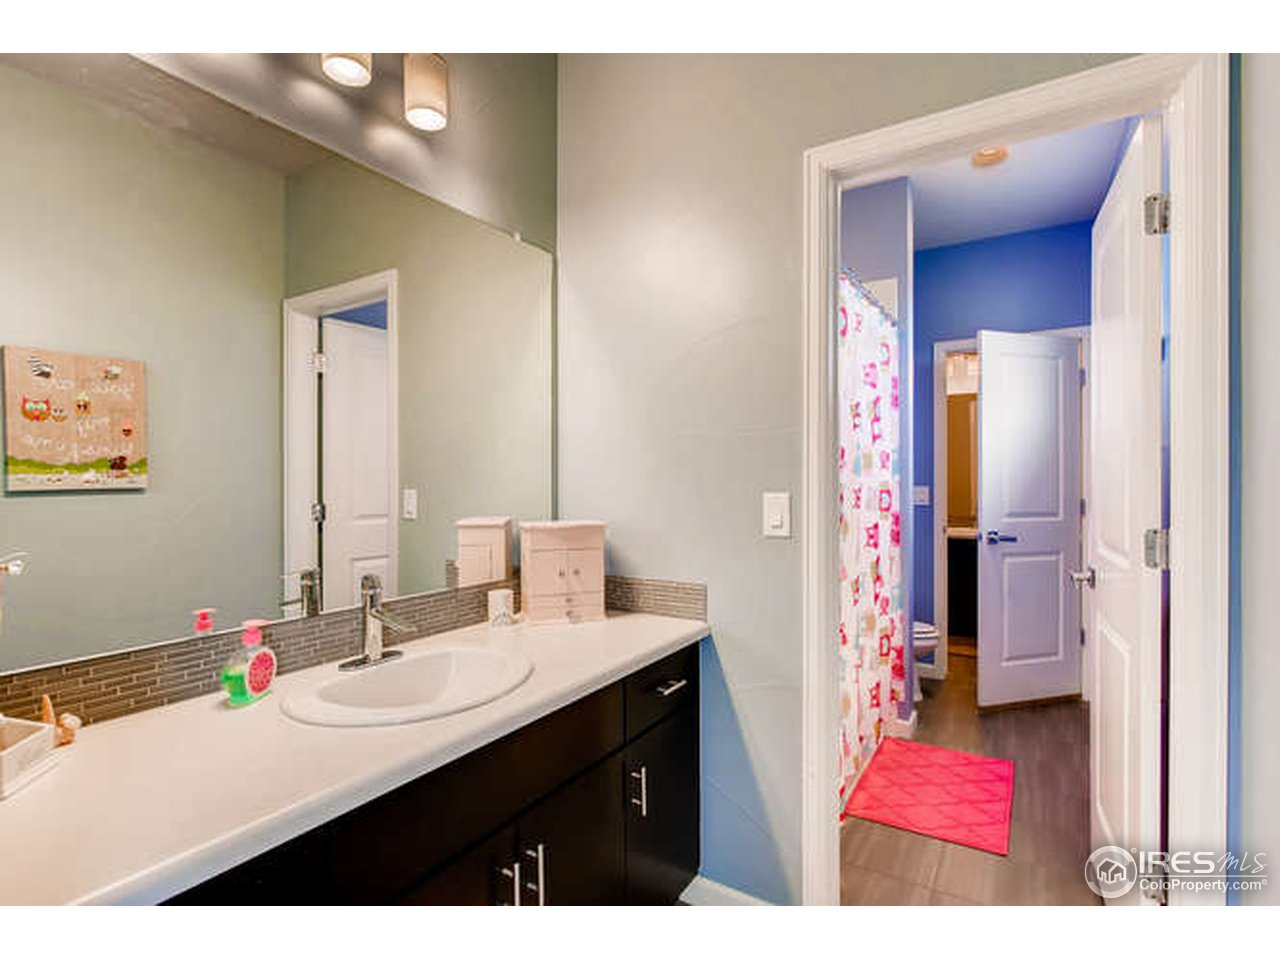 Jack and Jill bath between 3rd - 4th bedrooms